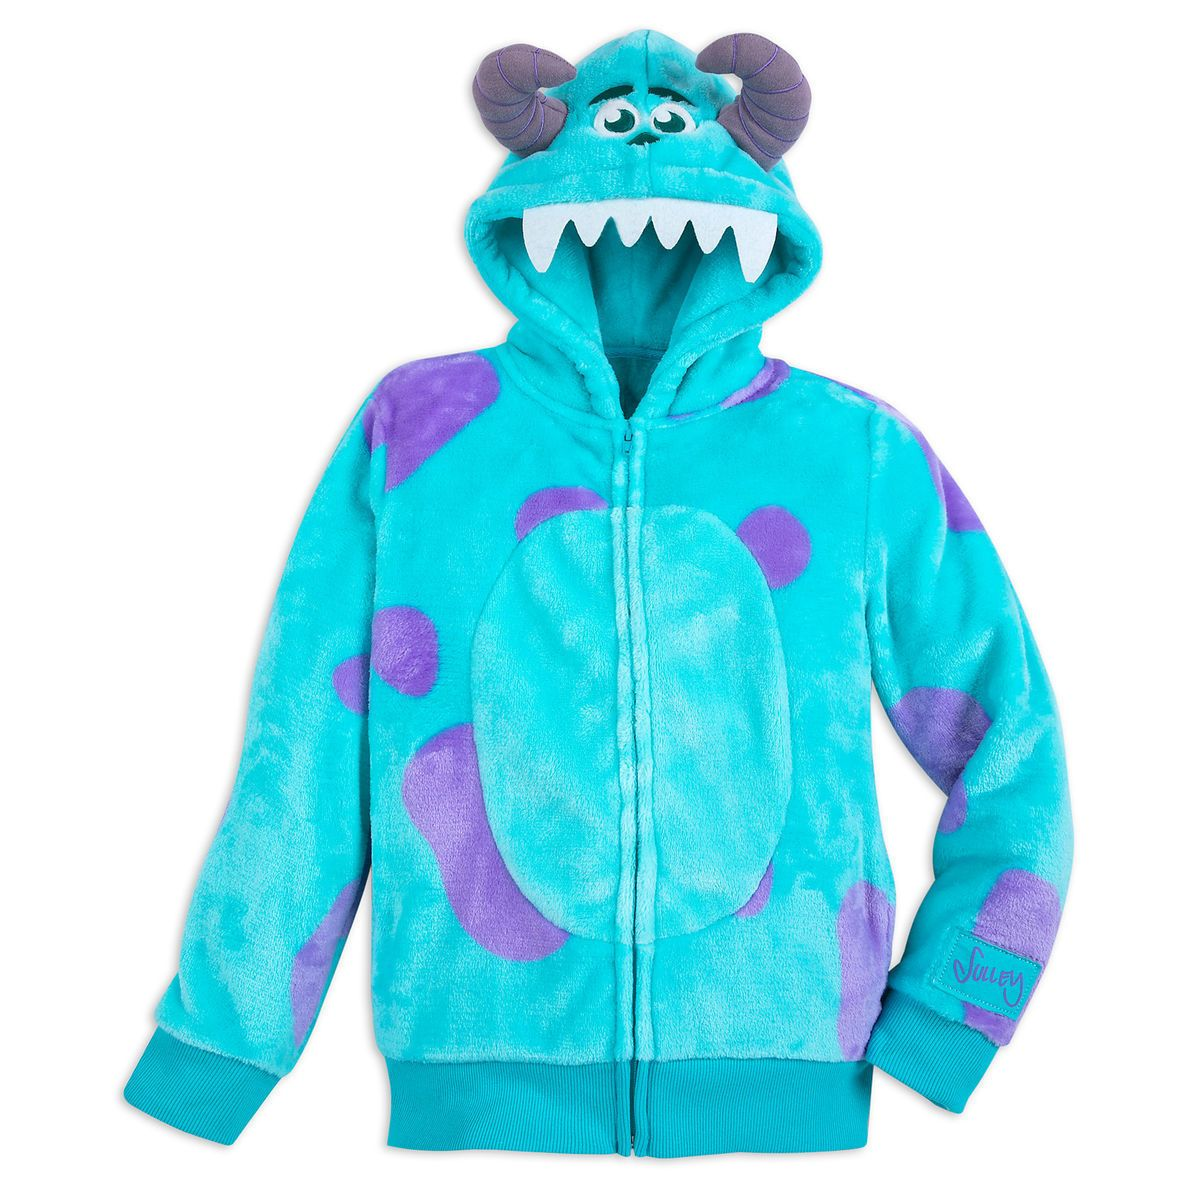 6fad3f7a2 Sulley Costume Zip Hoodie for Kids